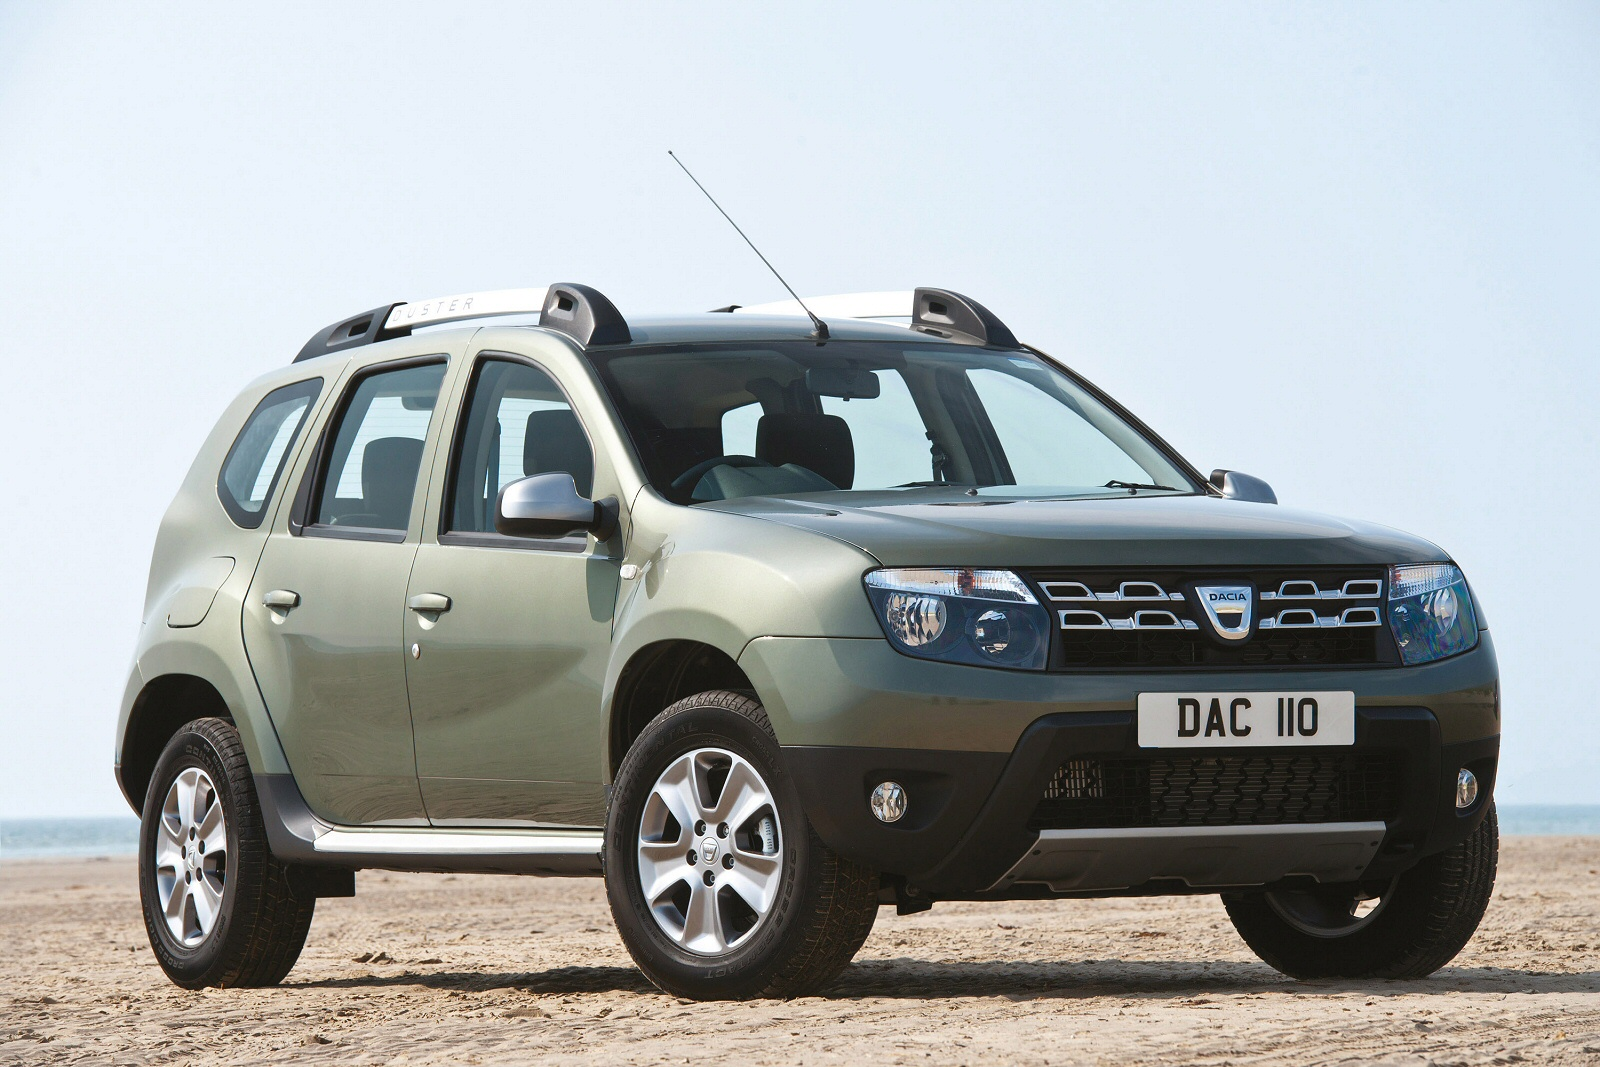 new dacia duster 1 5 dci 110 ambiance 5dr diesel estate for sale bristol street. Black Bedroom Furniture Sets. Home Design Ideas